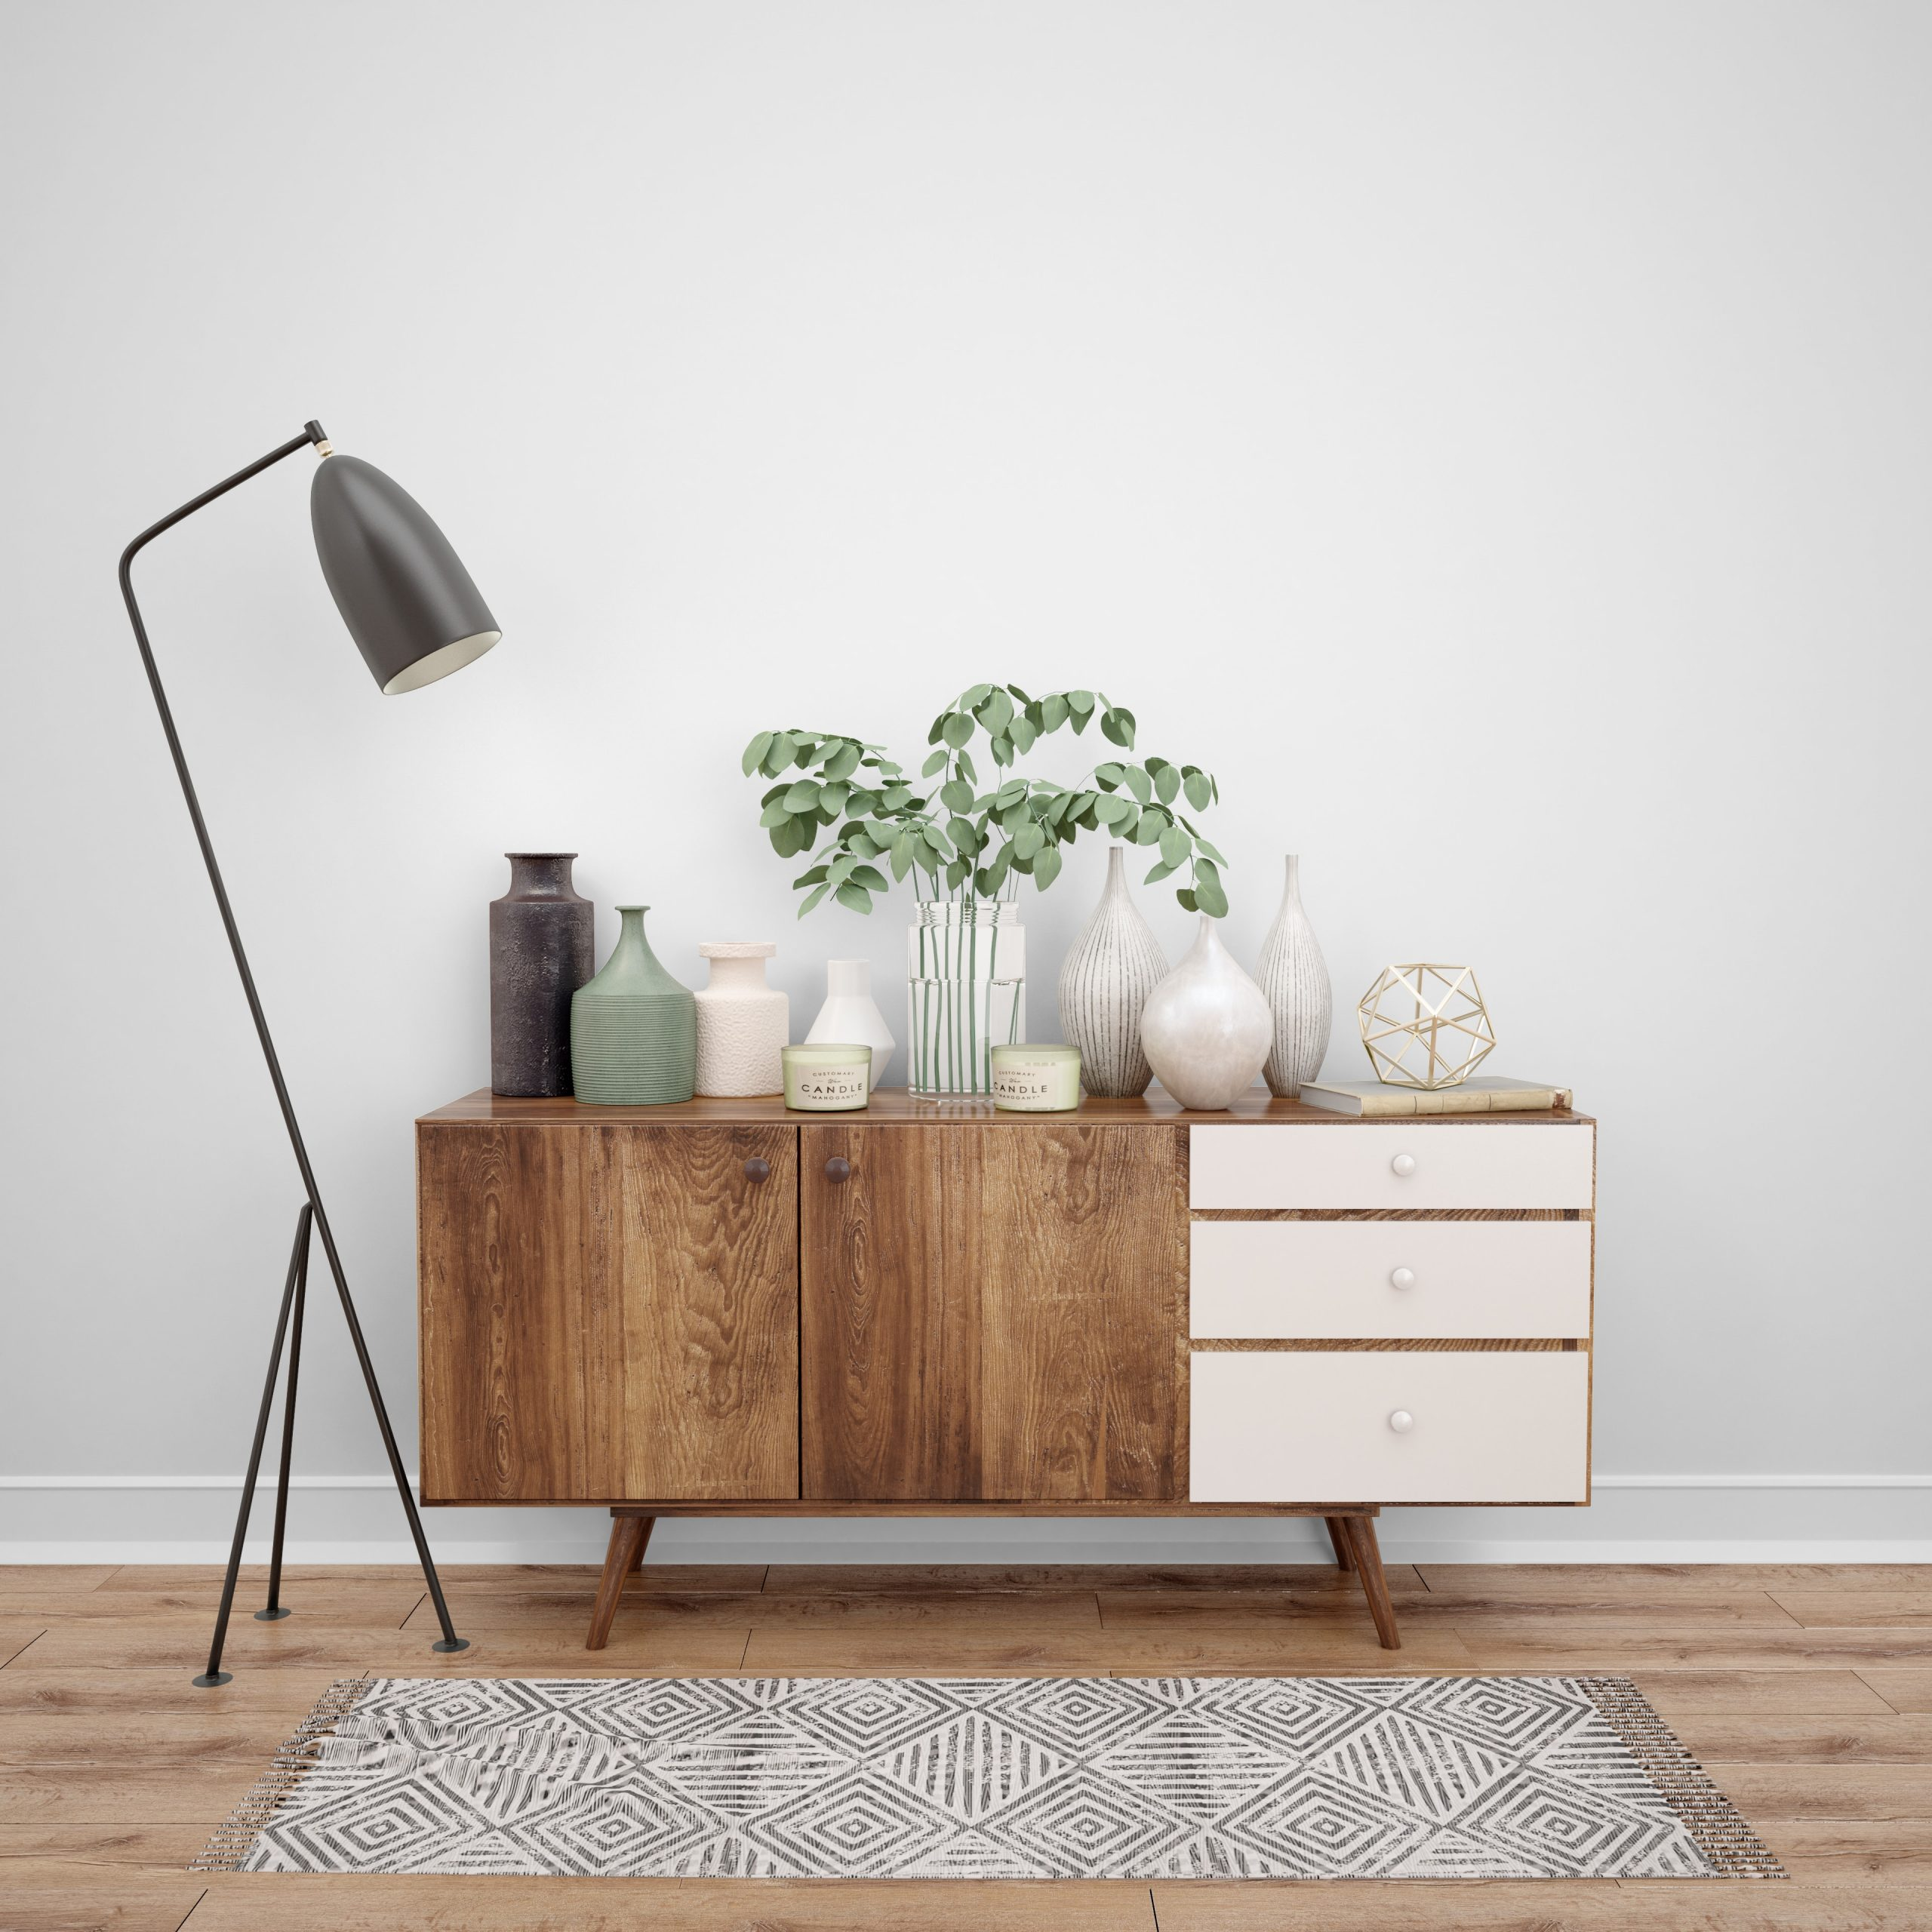 Standing lamp for mid century chest of drawers